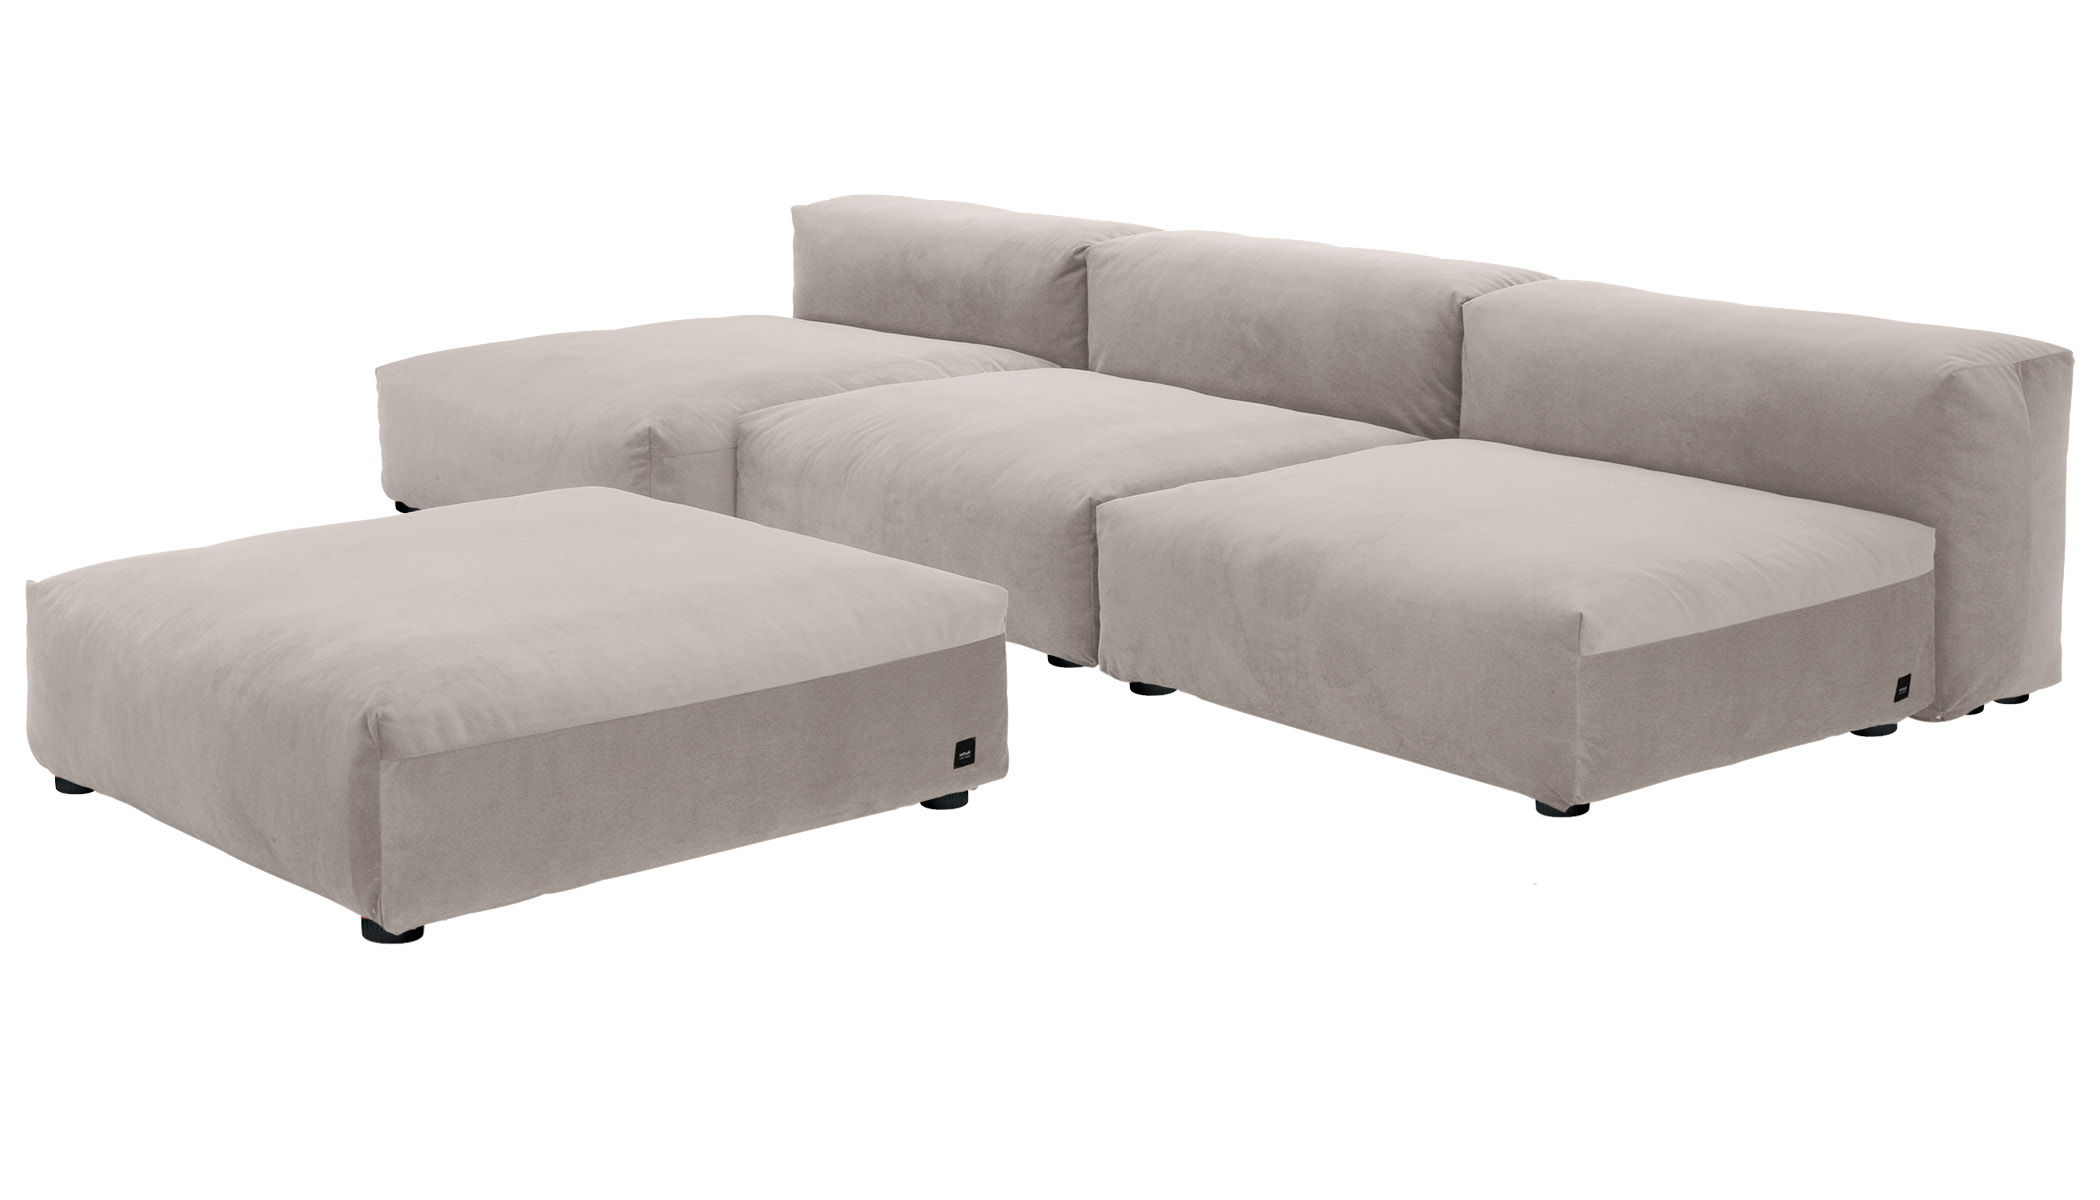 Sofa 2 Large 2 Medium 3 Side Velvet light grey